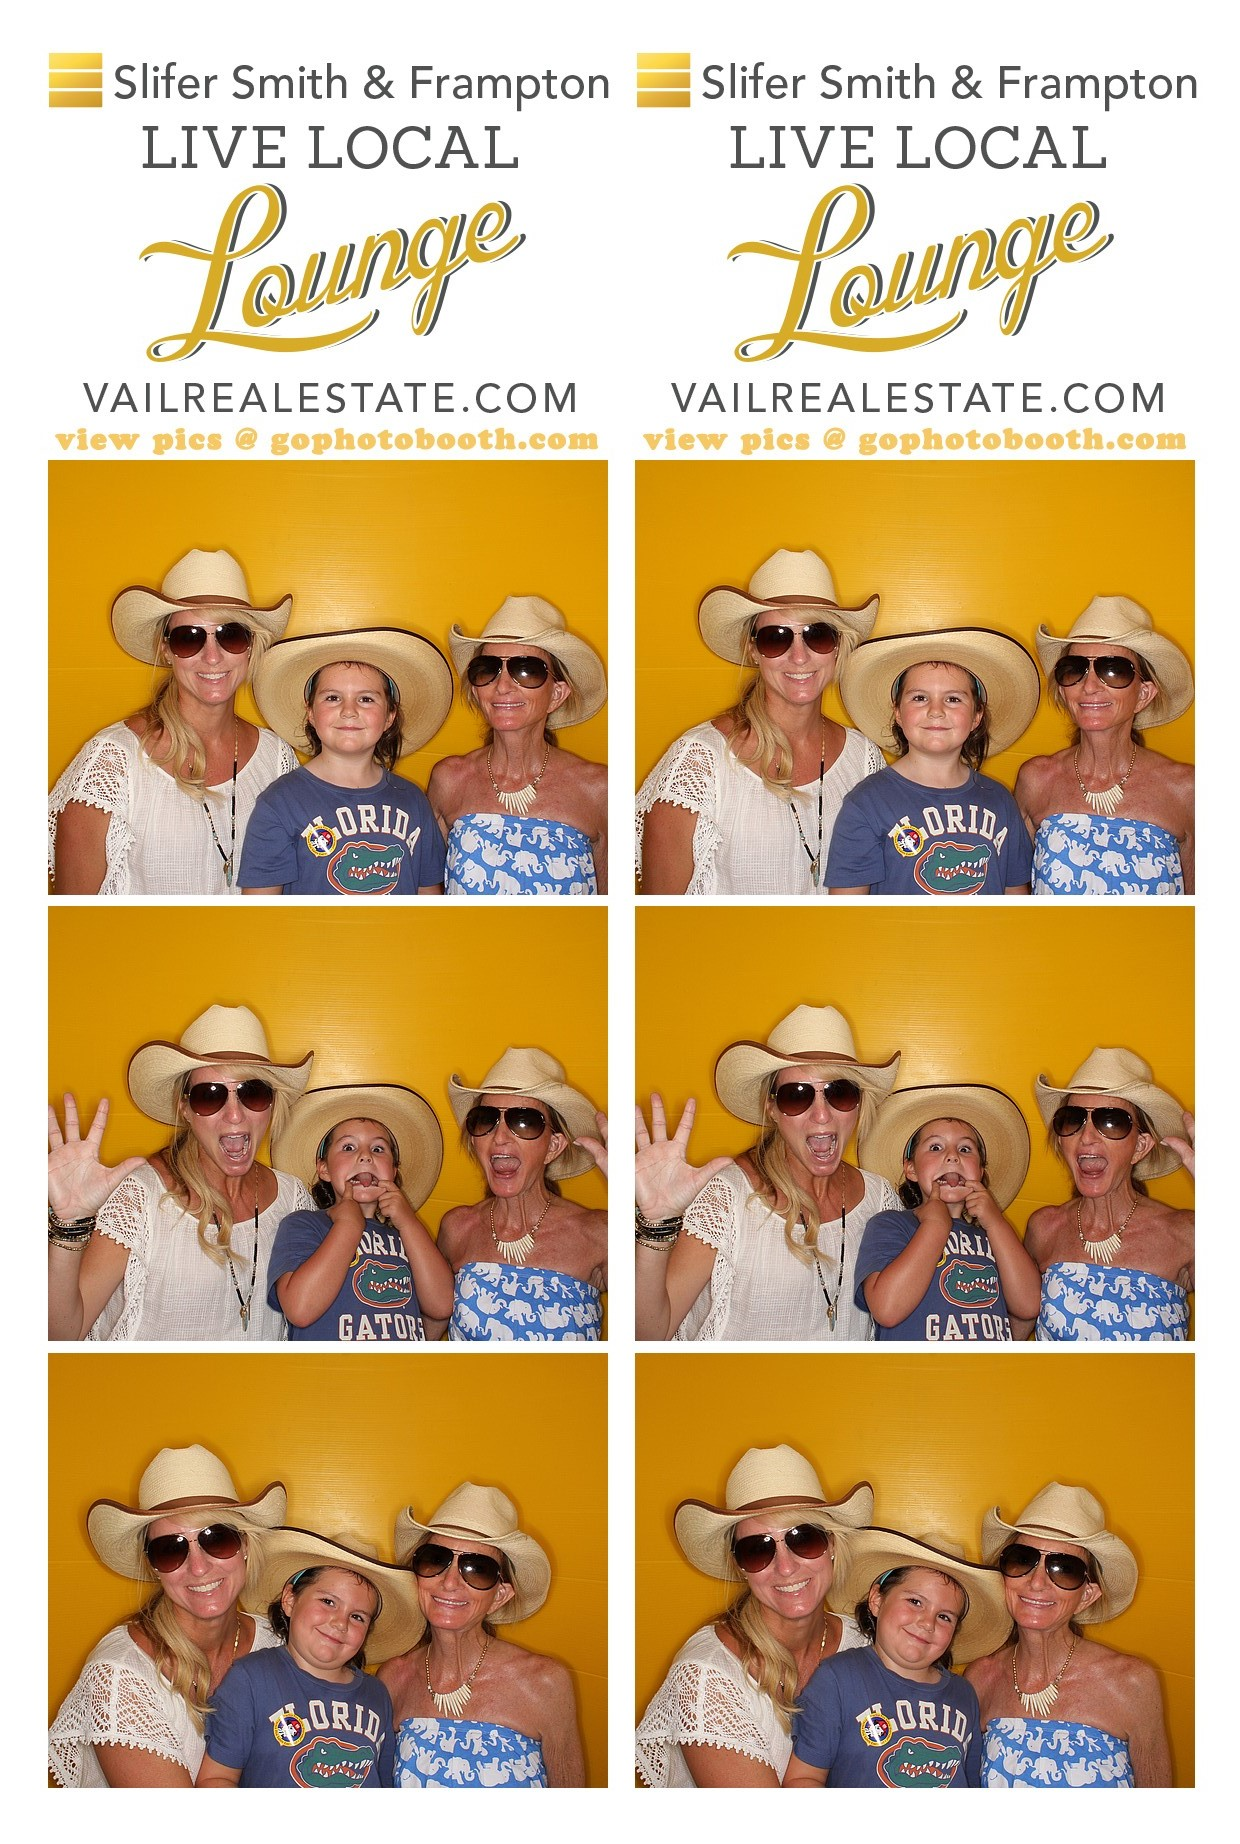 Slifer, Smith & Frampton Photo Booth Vail Market 8/2/15